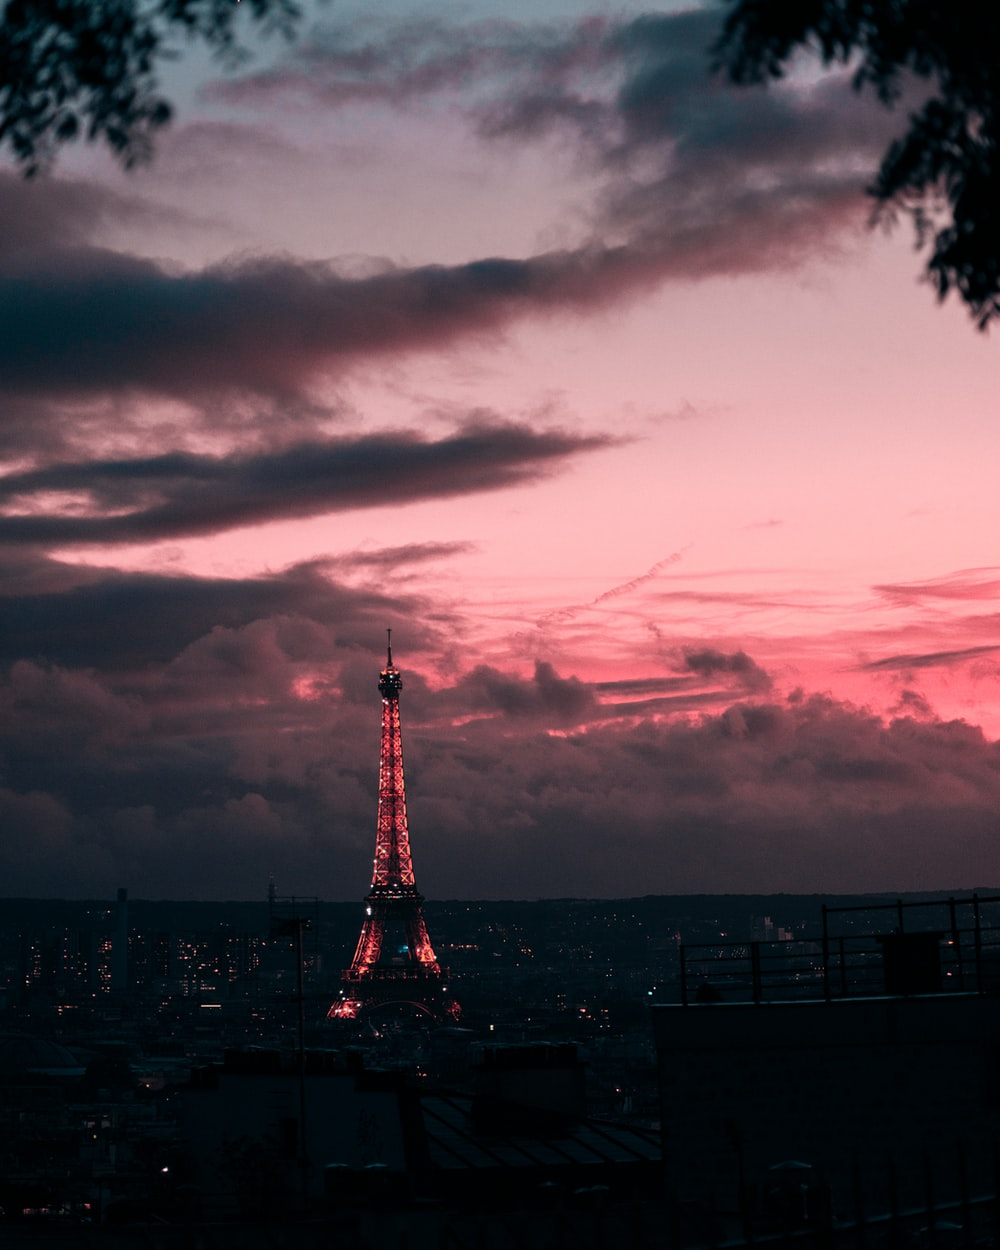 red and white tower under cloudy sky during sunset